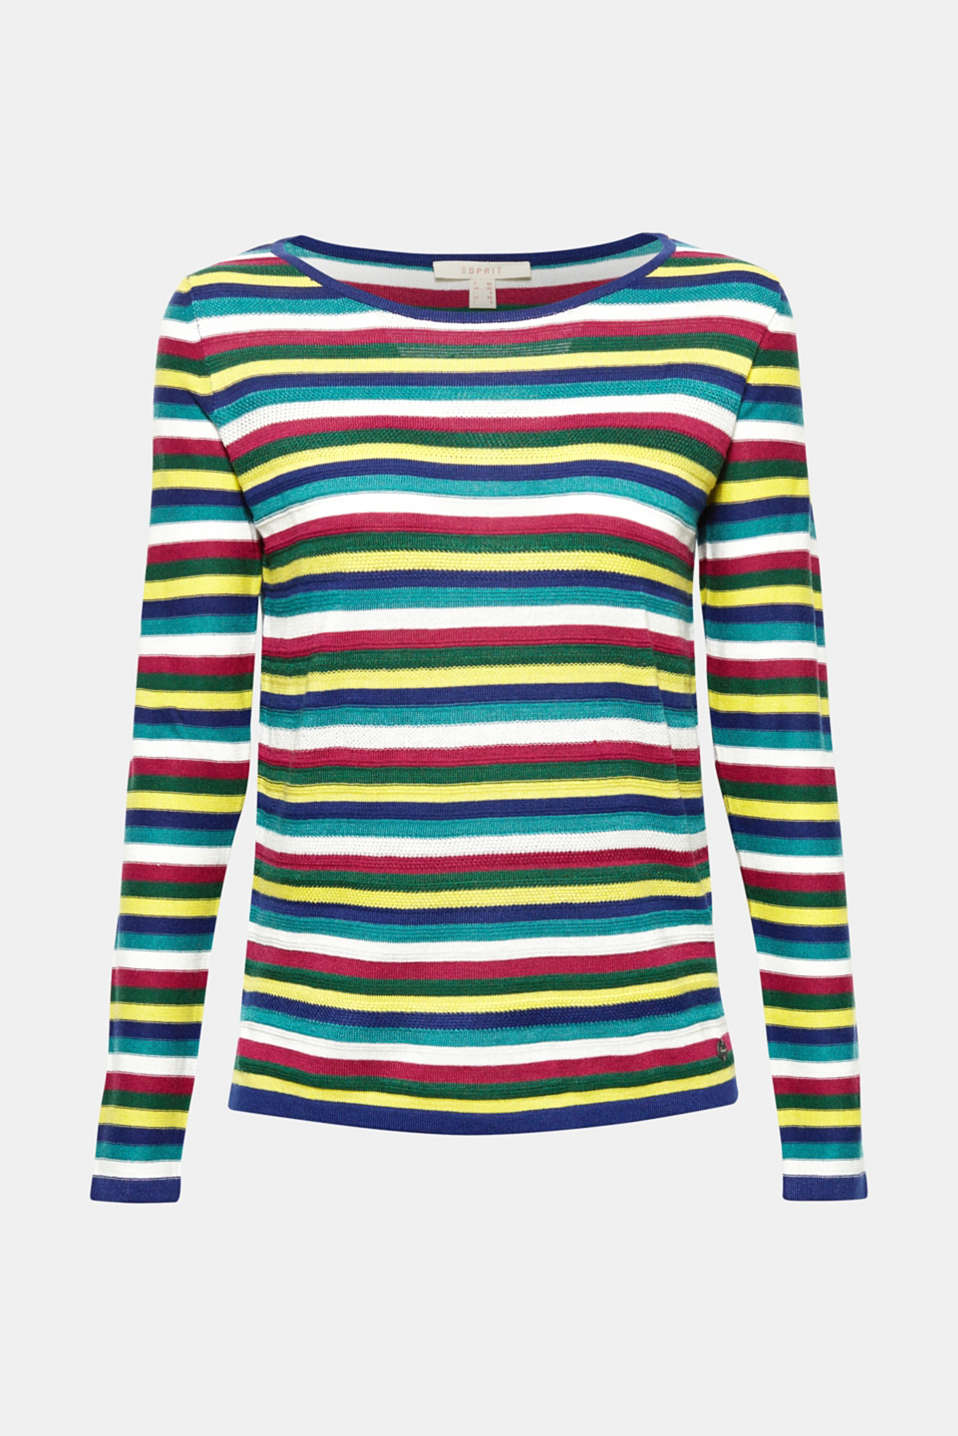 This feel-good jumper is wonderfully lightweight and soft, comes in vibrant colours and features fine, textured stripes!